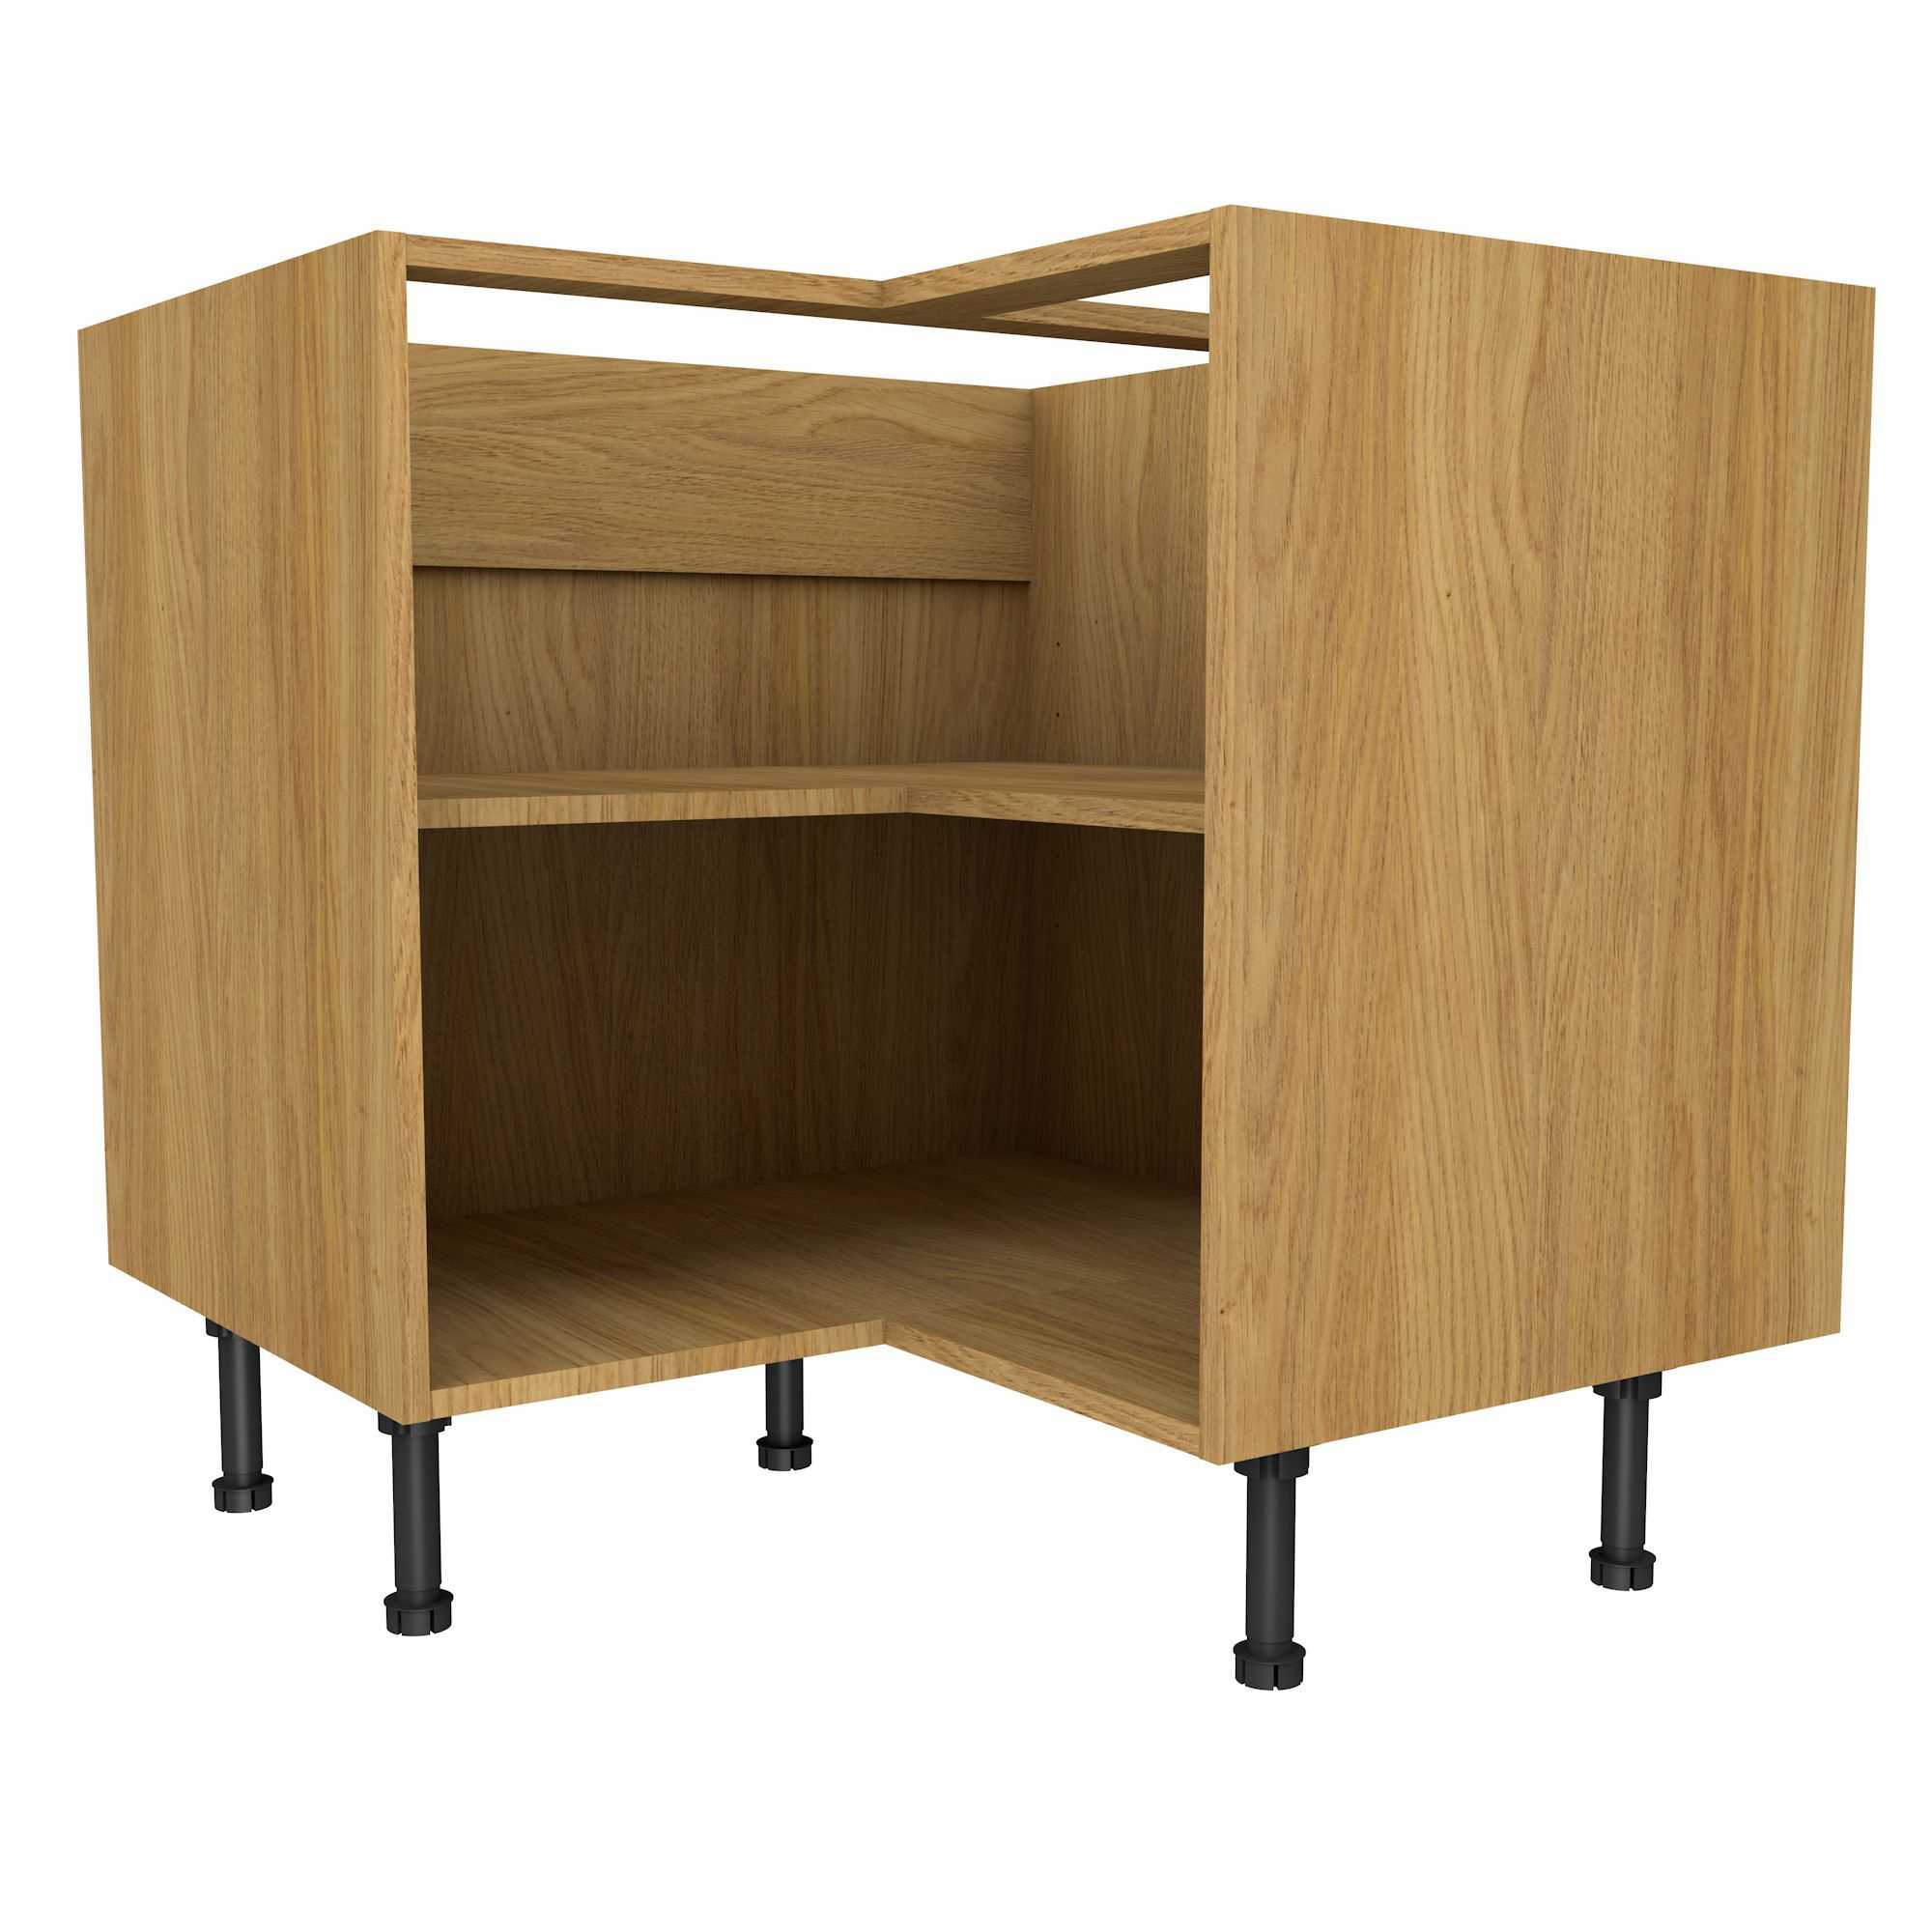 Oak Effect Kitchen Cabinets: Cooke & Lewis Oak Effect Corner Base Cabinet (W)925mm